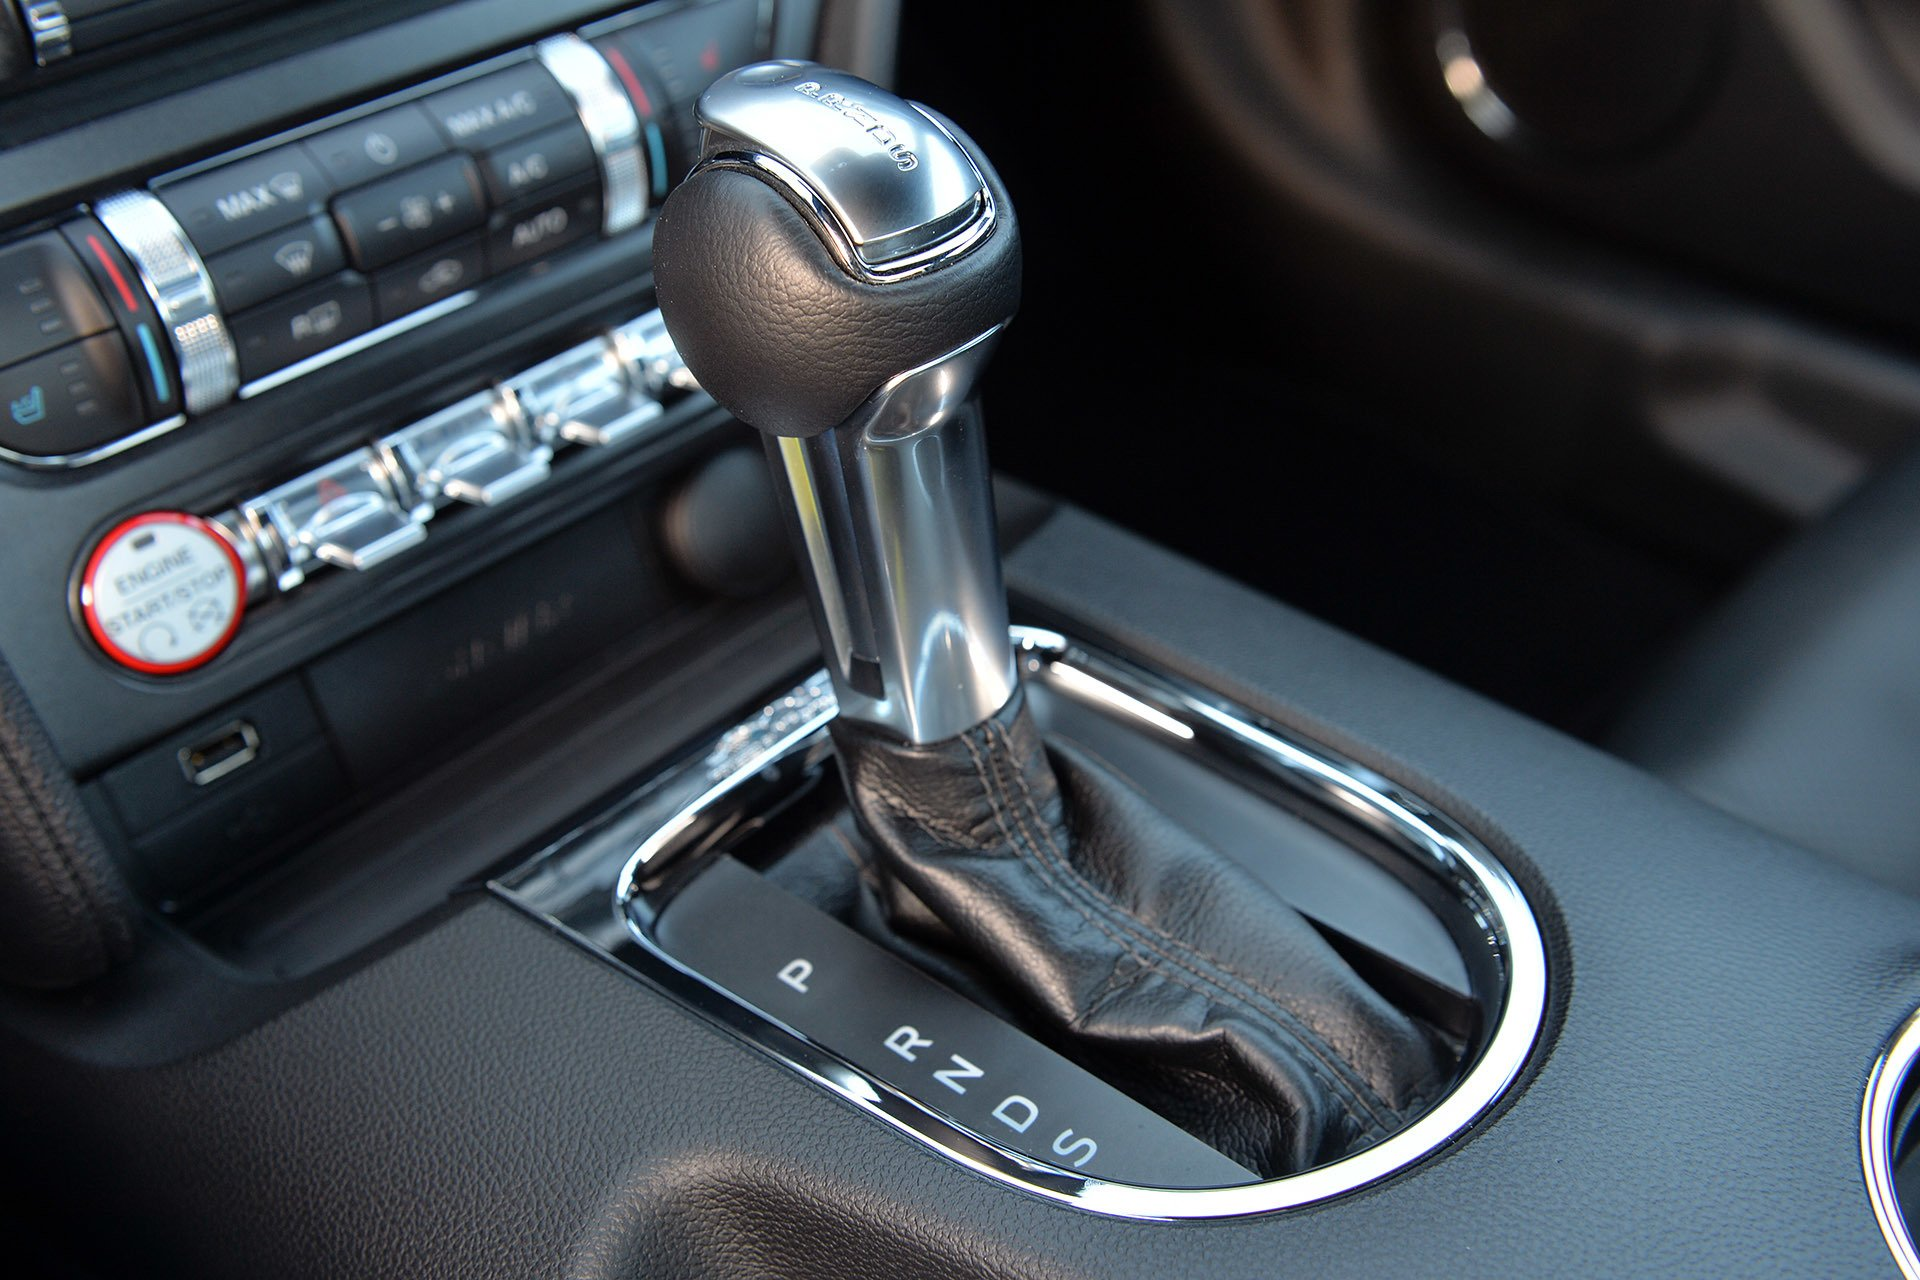 Sneak-a-Peek at the Mustang's New 10-Speed Automatic in Action